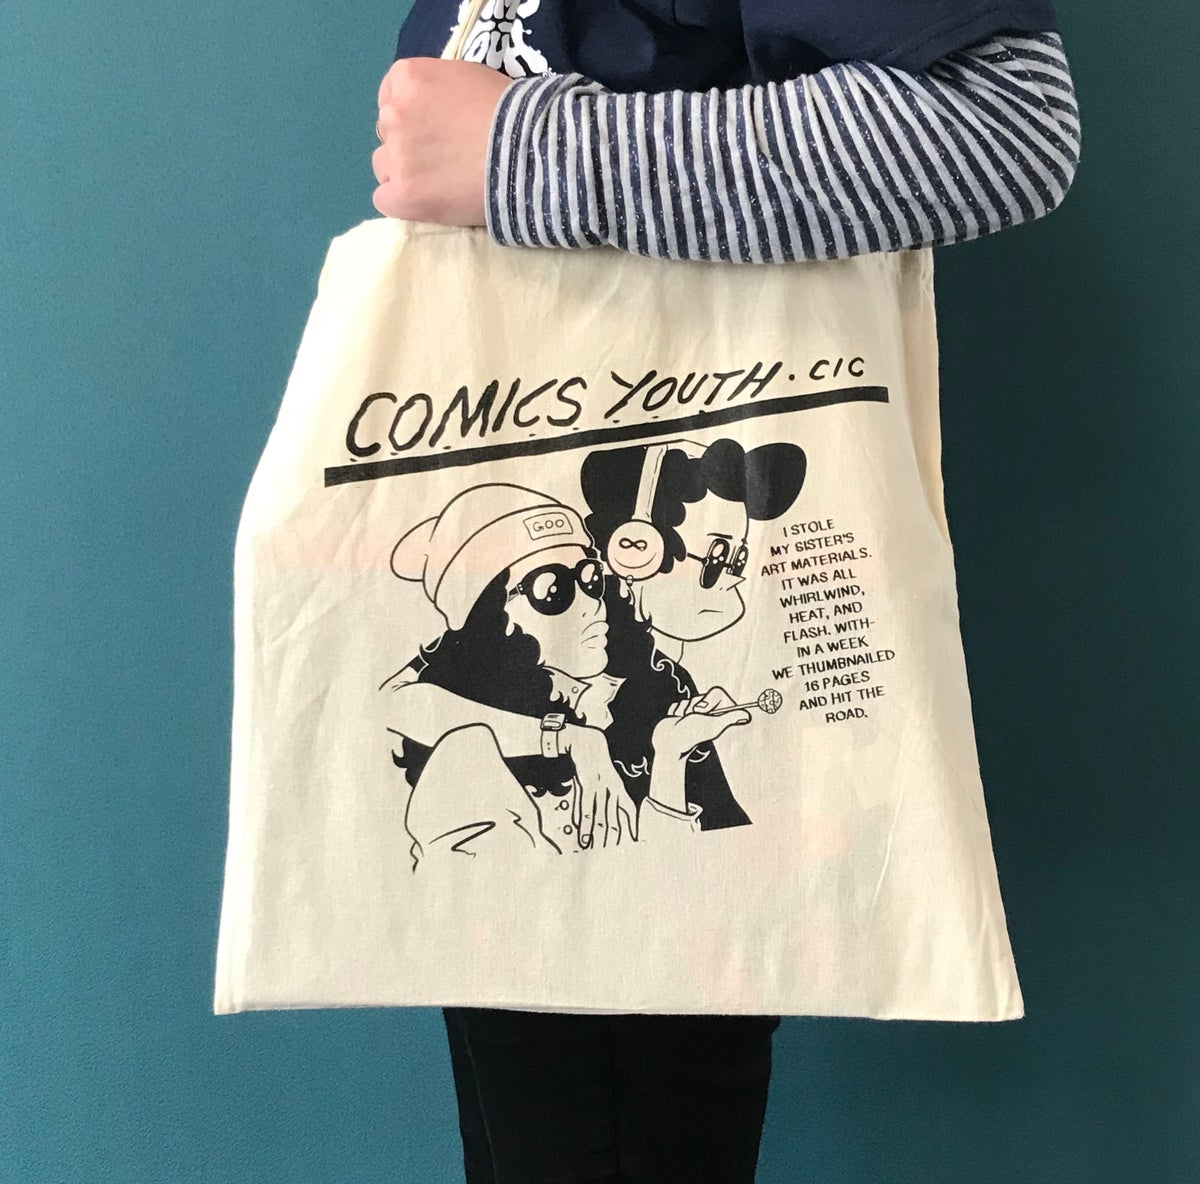 Image of Comics Youth Tote Bag